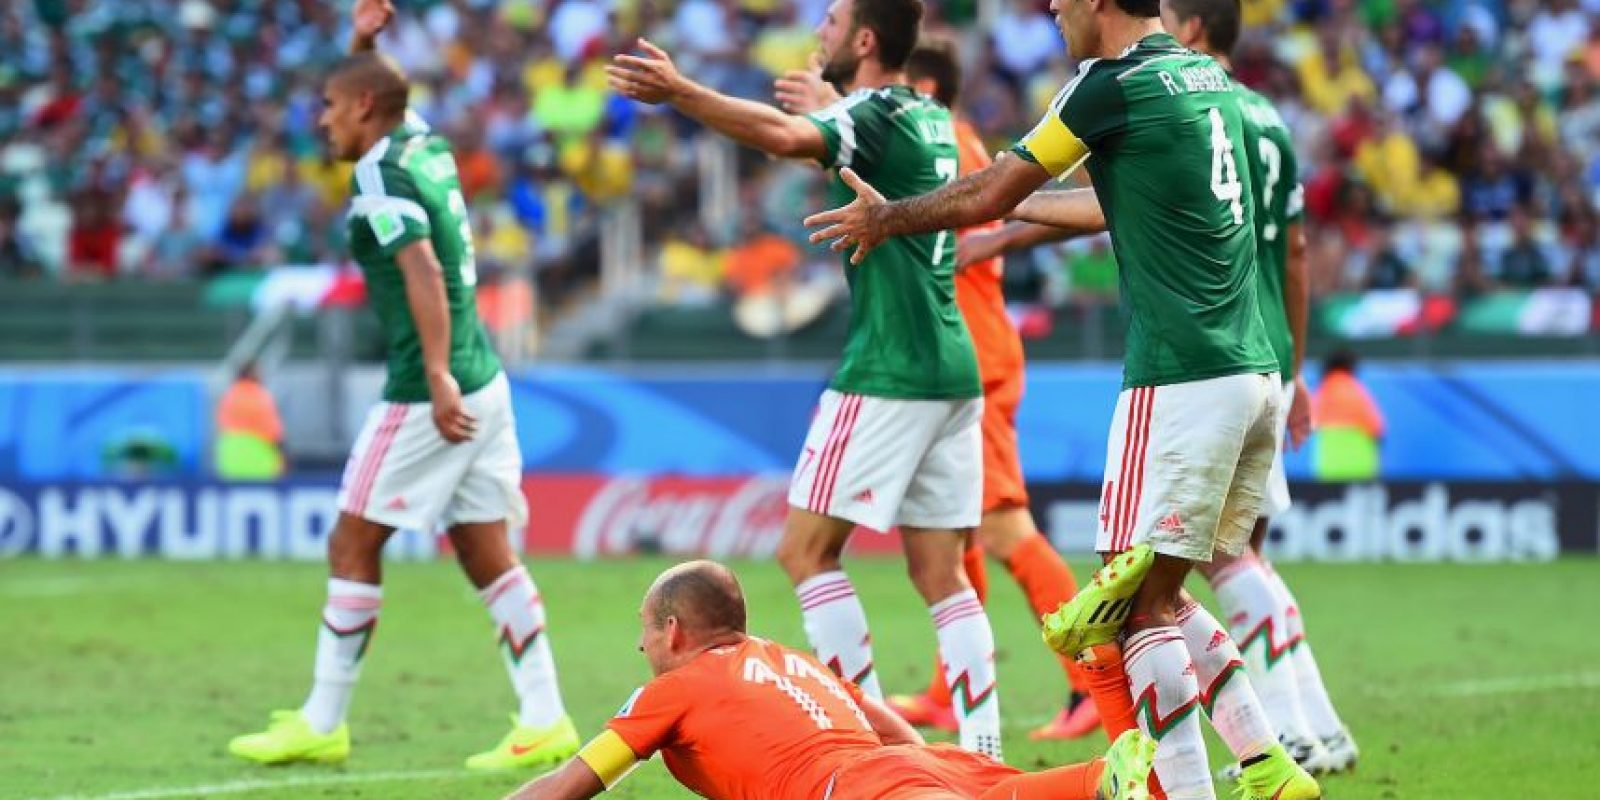 5. Holanda vs. México Foto: Getty Images